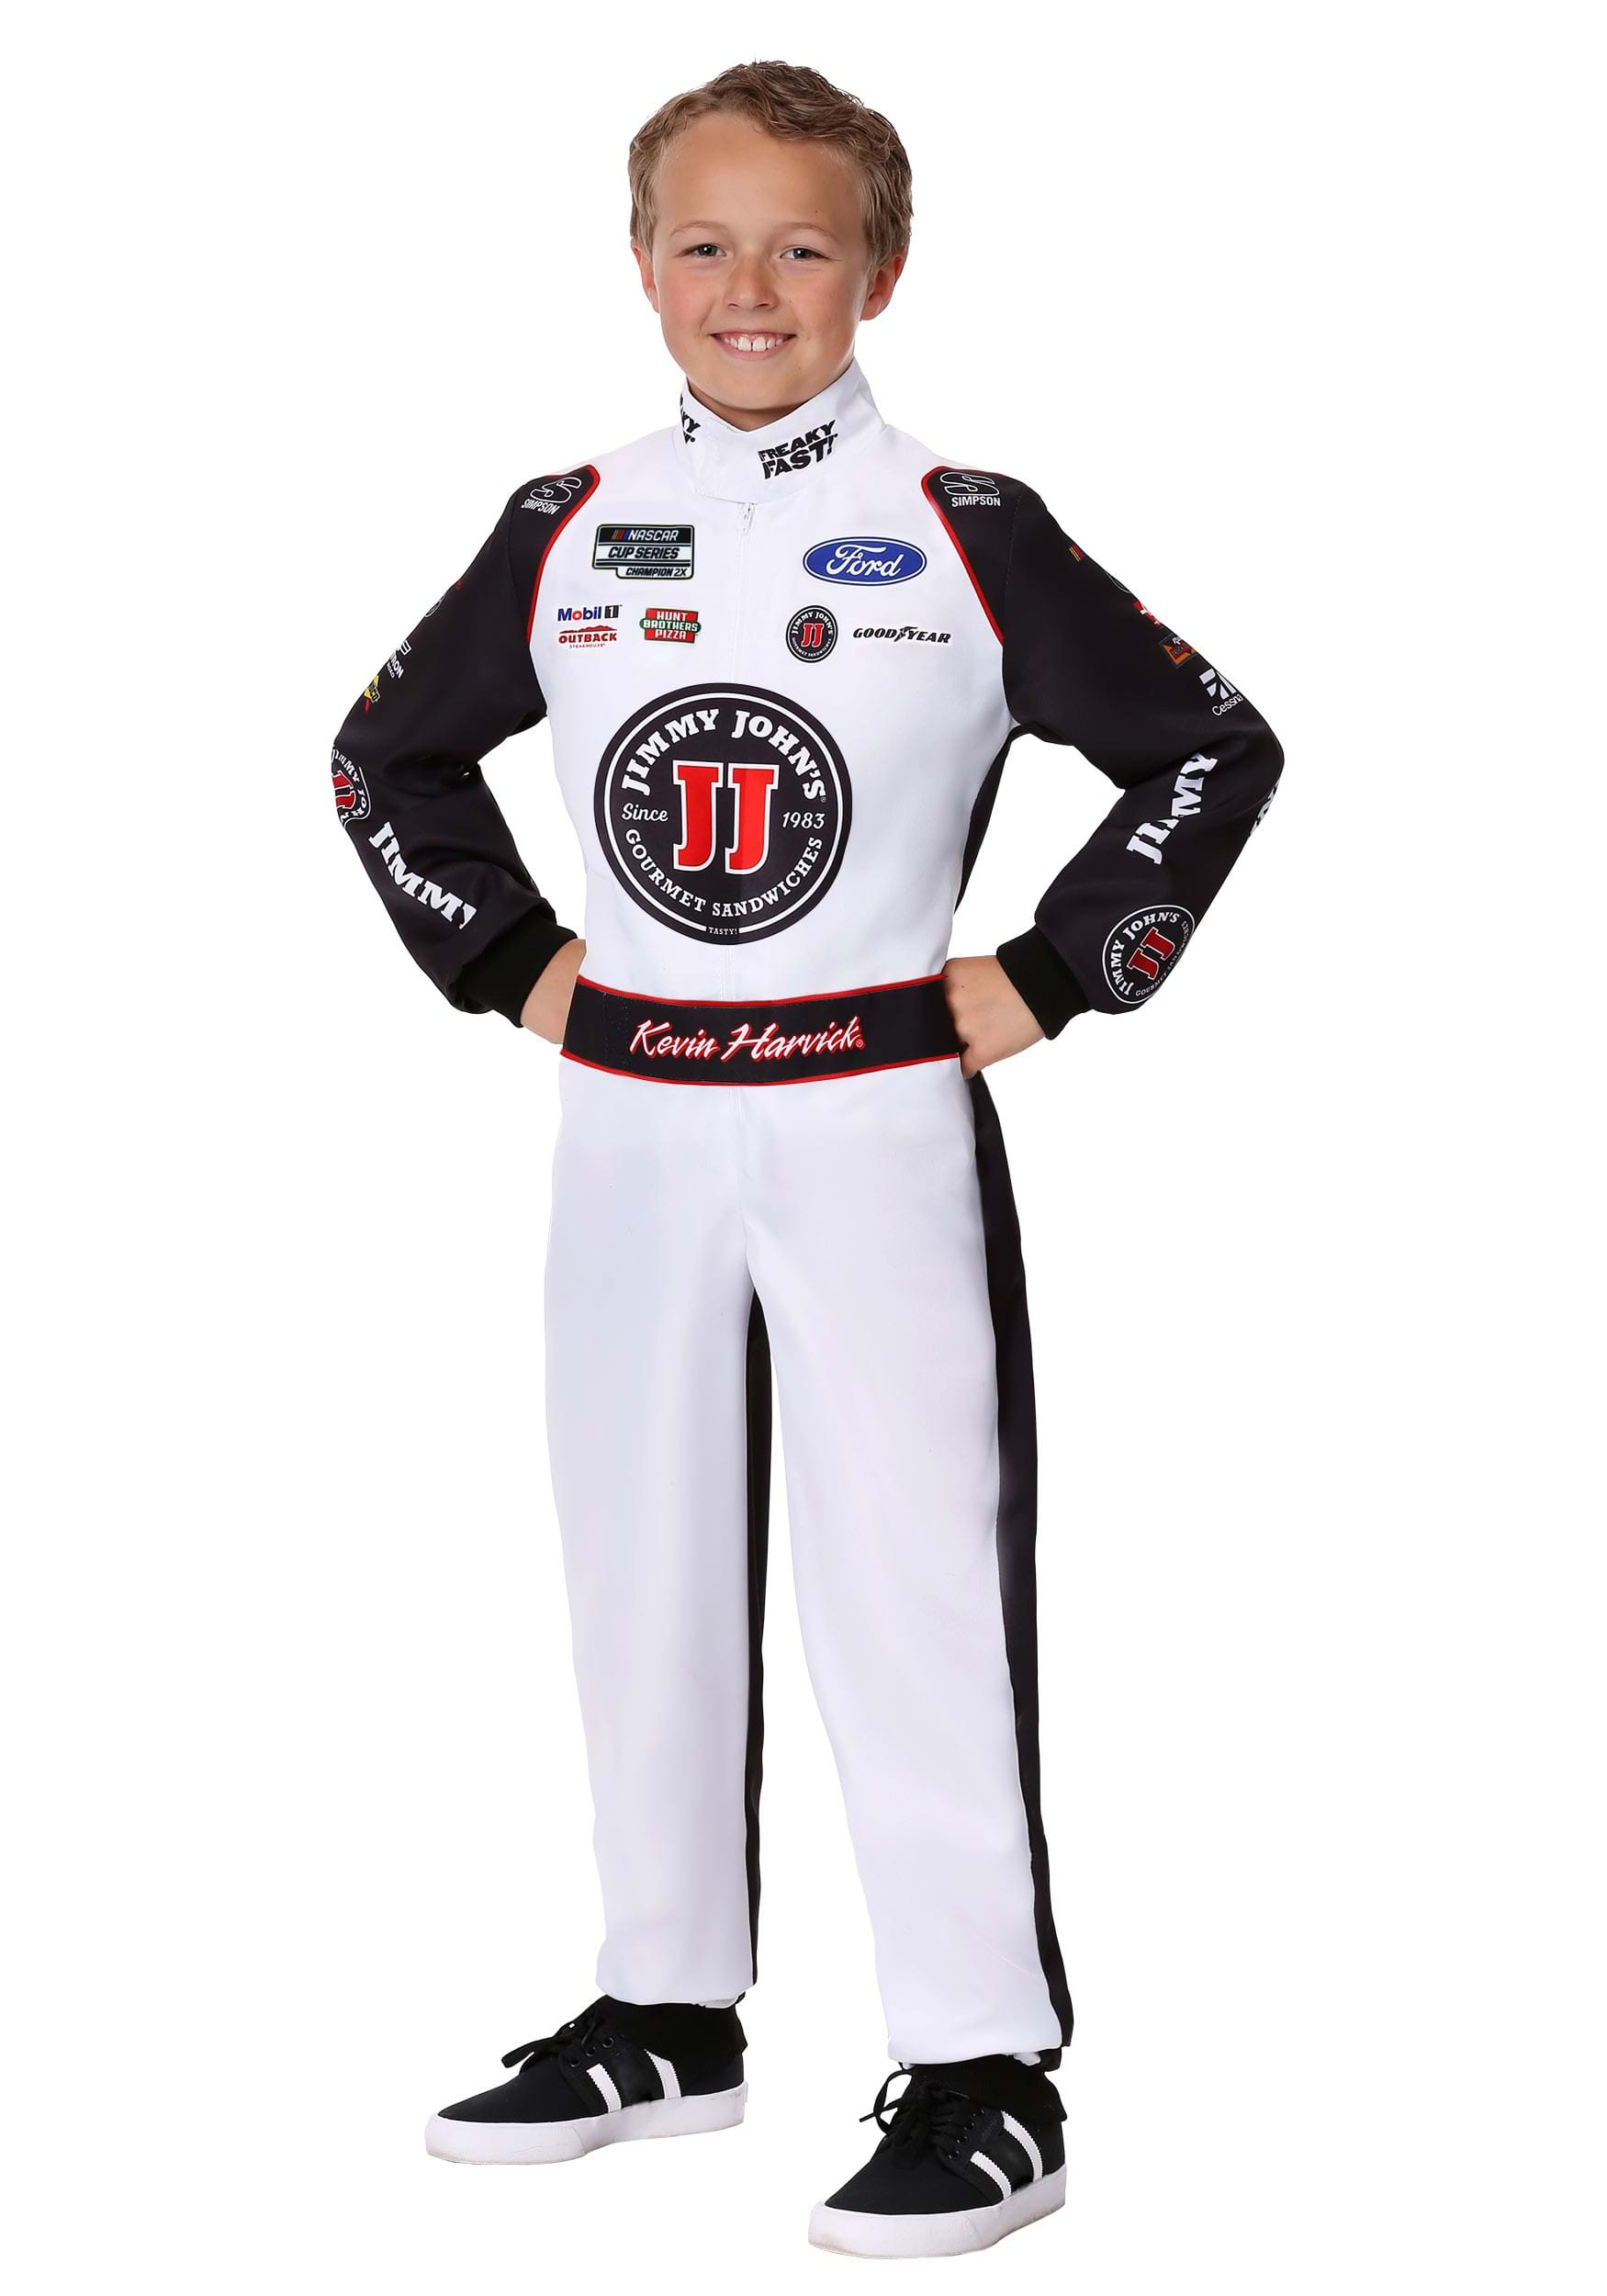 #4 Kevin Harvick(R) Jimmy John's Uniform Costume for a Child